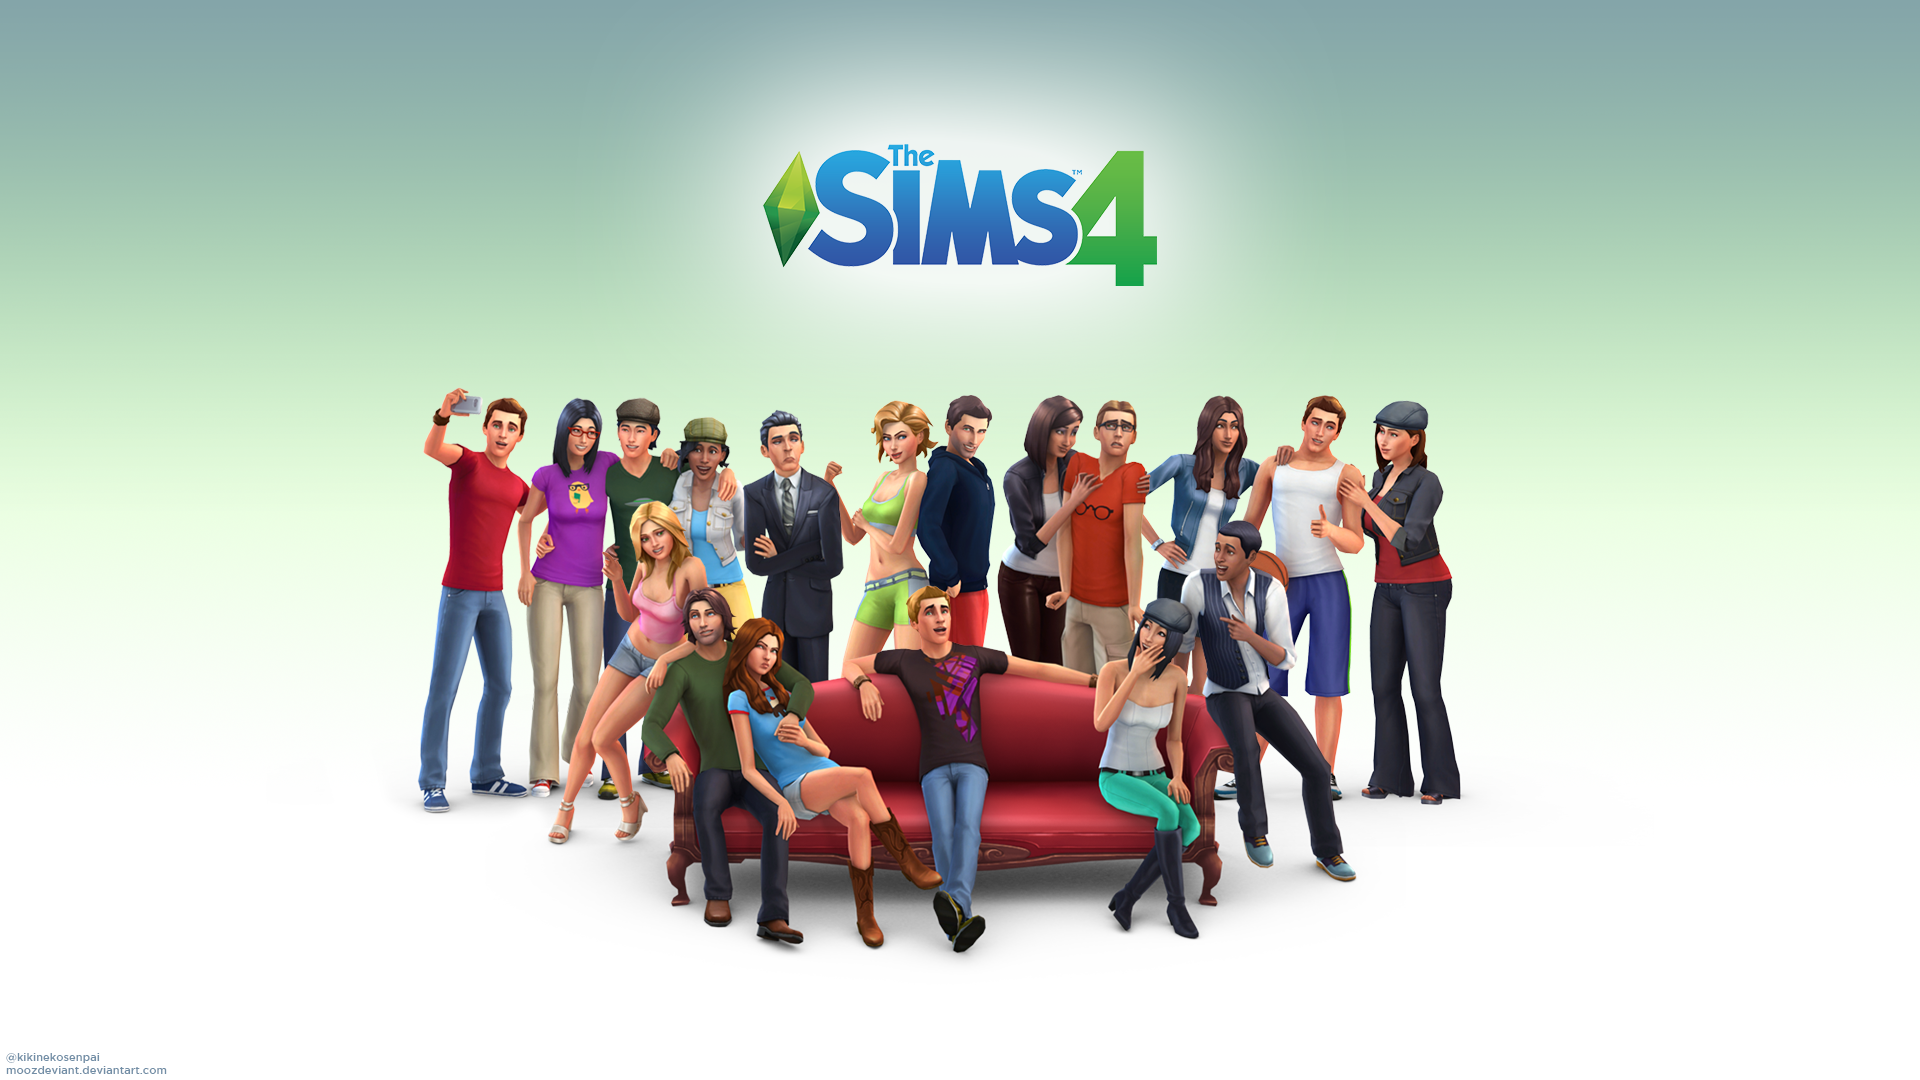 PC - Refresh Review 4K im Test: Die Sims 4